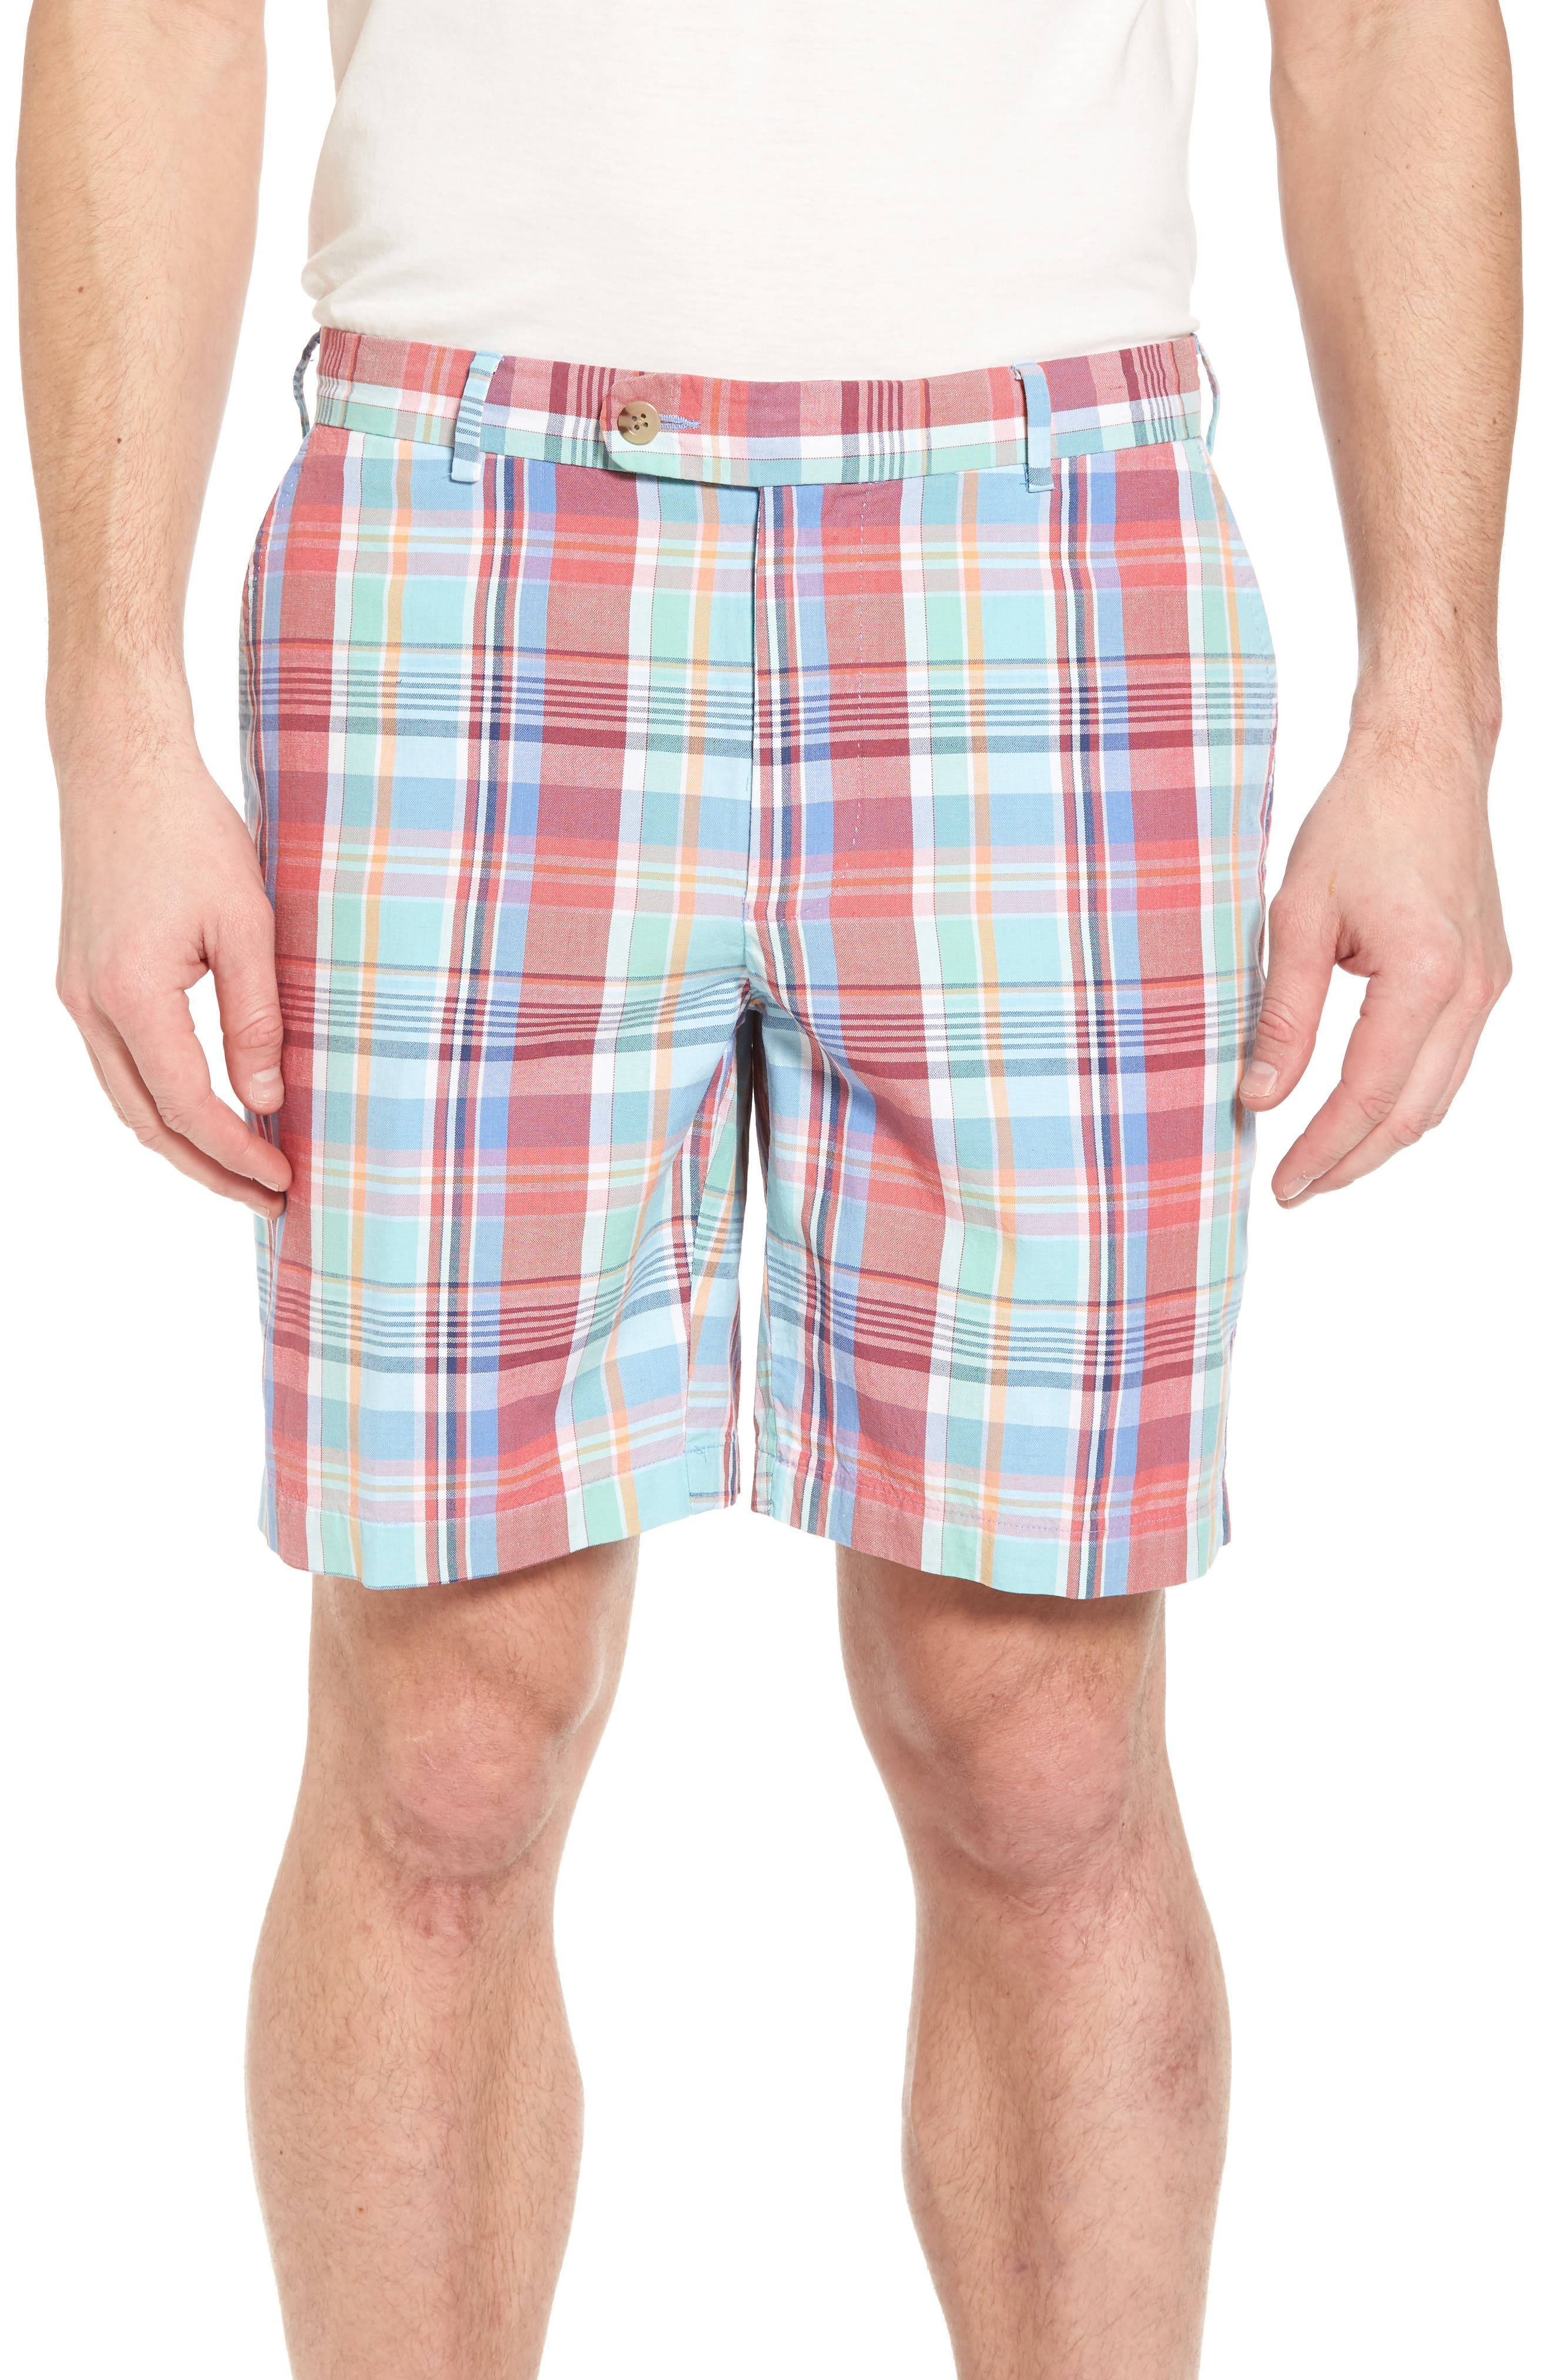 Seaside Madras Plaid Shorts,                             Main thumbnail 1, color,                             Cape Red